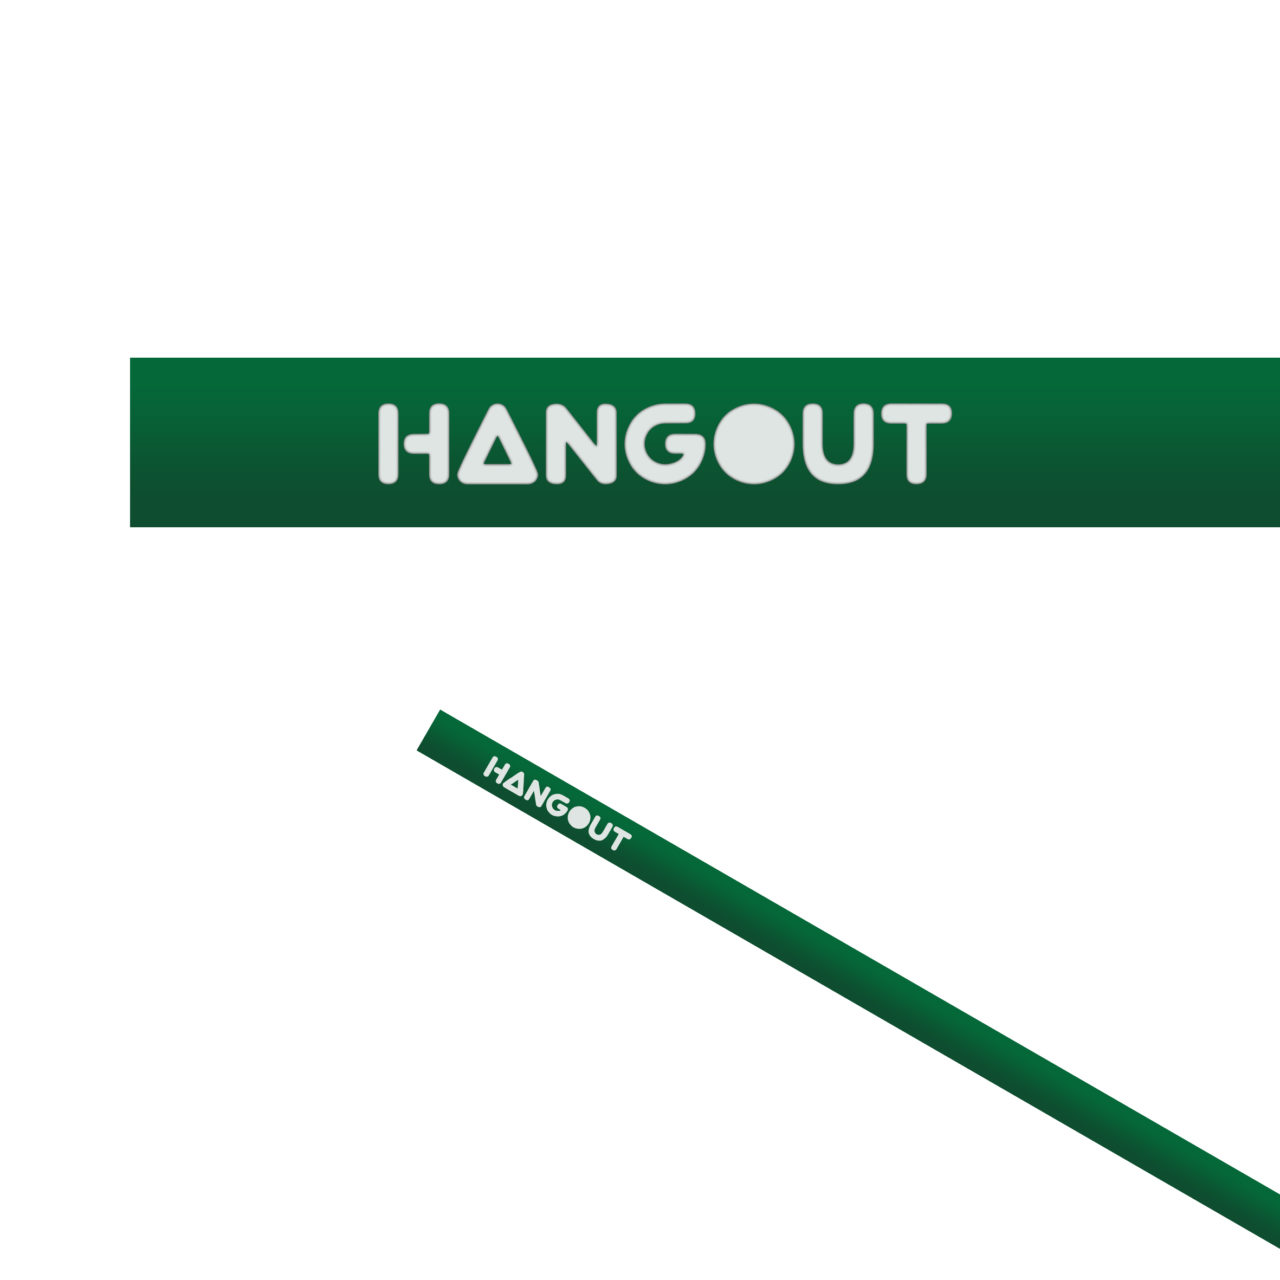 hangout-cafe-pipet-tasarimi